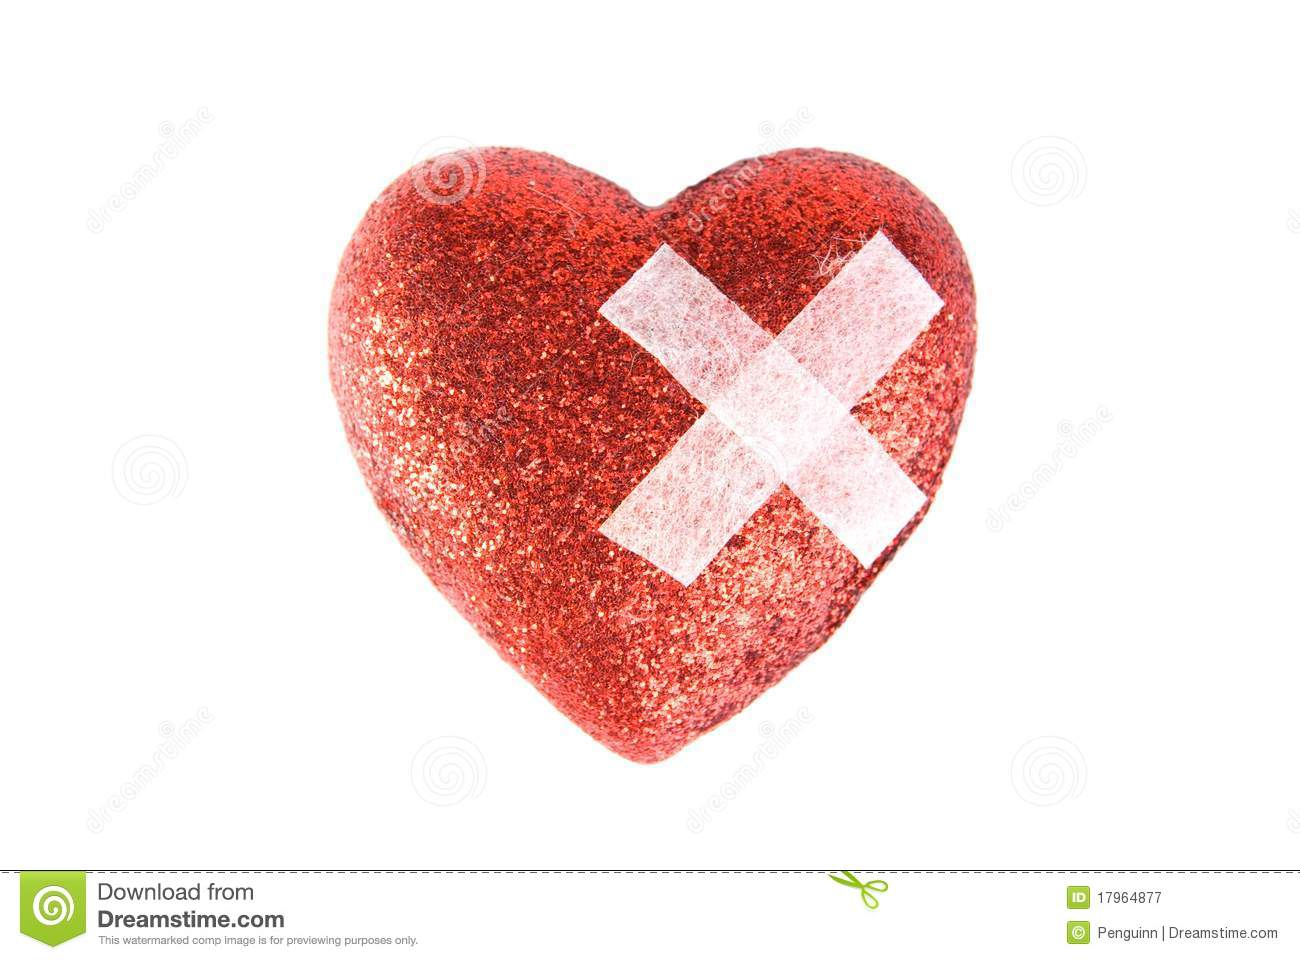 Sick Heart Stock Image. Image Of Bright, Loss, Care